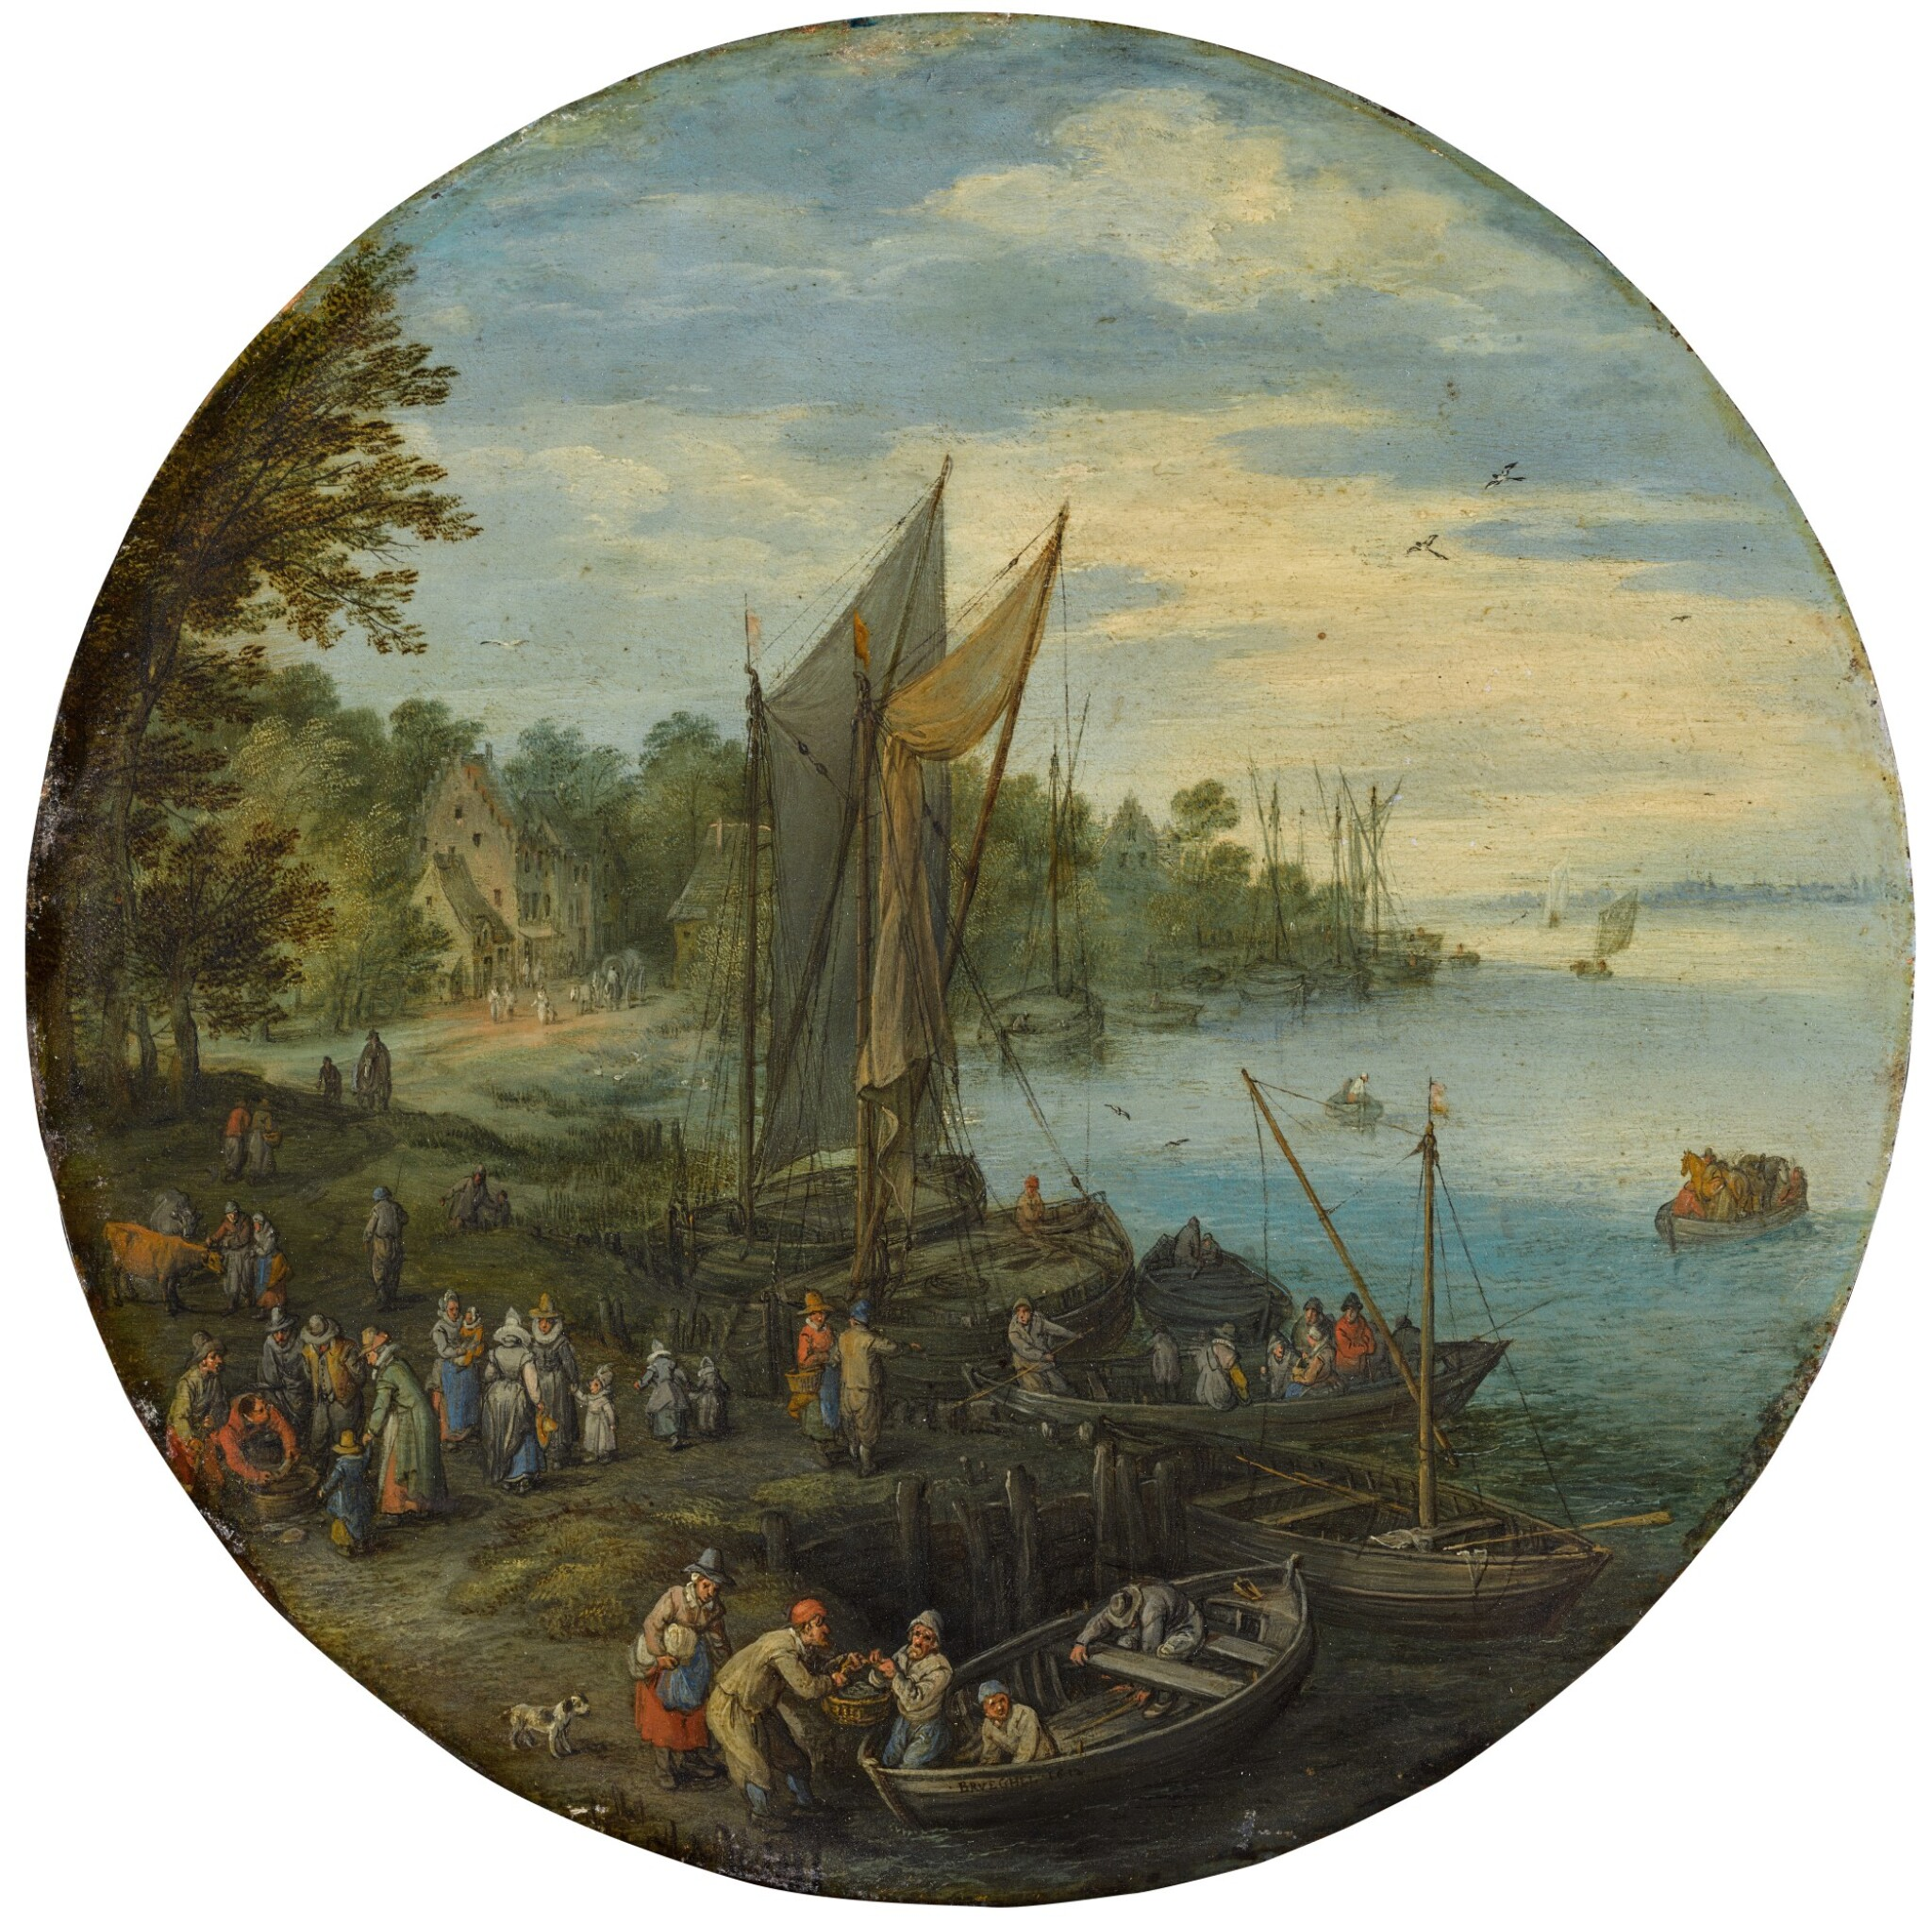 View full screen - View 1 of Lot 16. A wooded estuary with a ferry and fishermen selling their catch | 《樹木繁茂的河口、渡船與售賣漁獲的漁夫》.